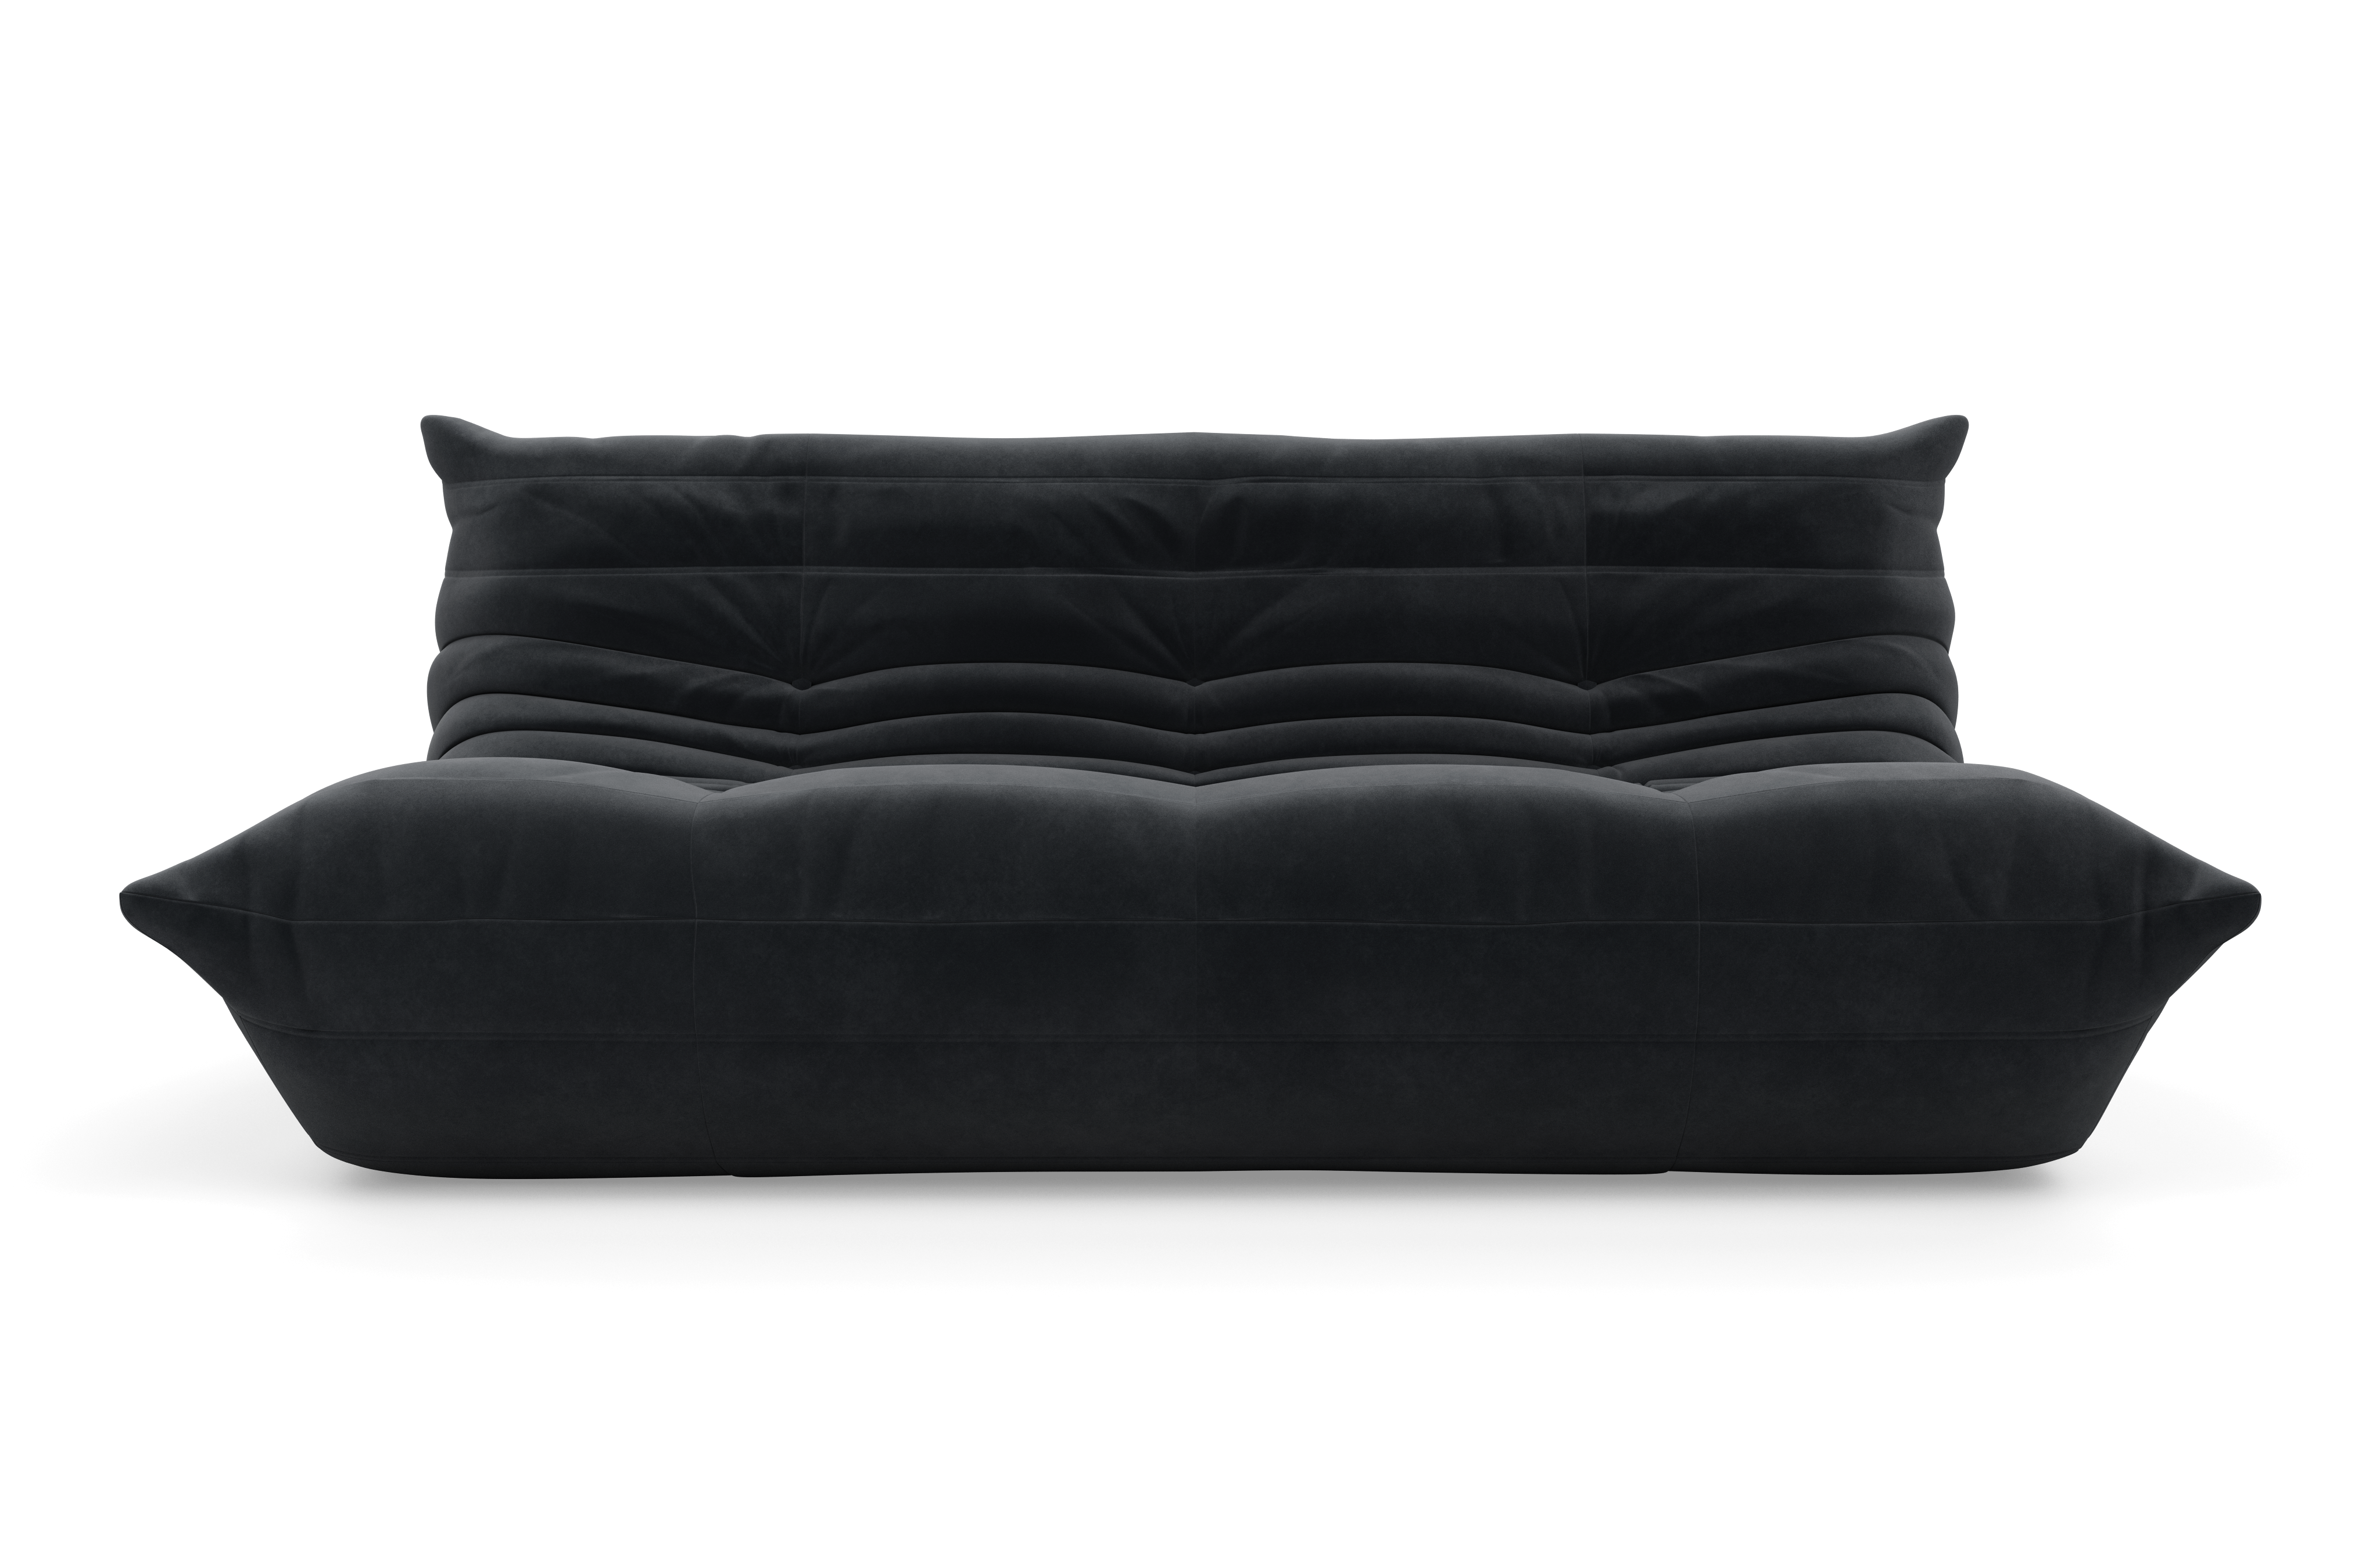 togo sofa ligne roset ligne roset new york sofas sectionals thesofa. Black Bedroom Furniture Sets. Home Design Ideas